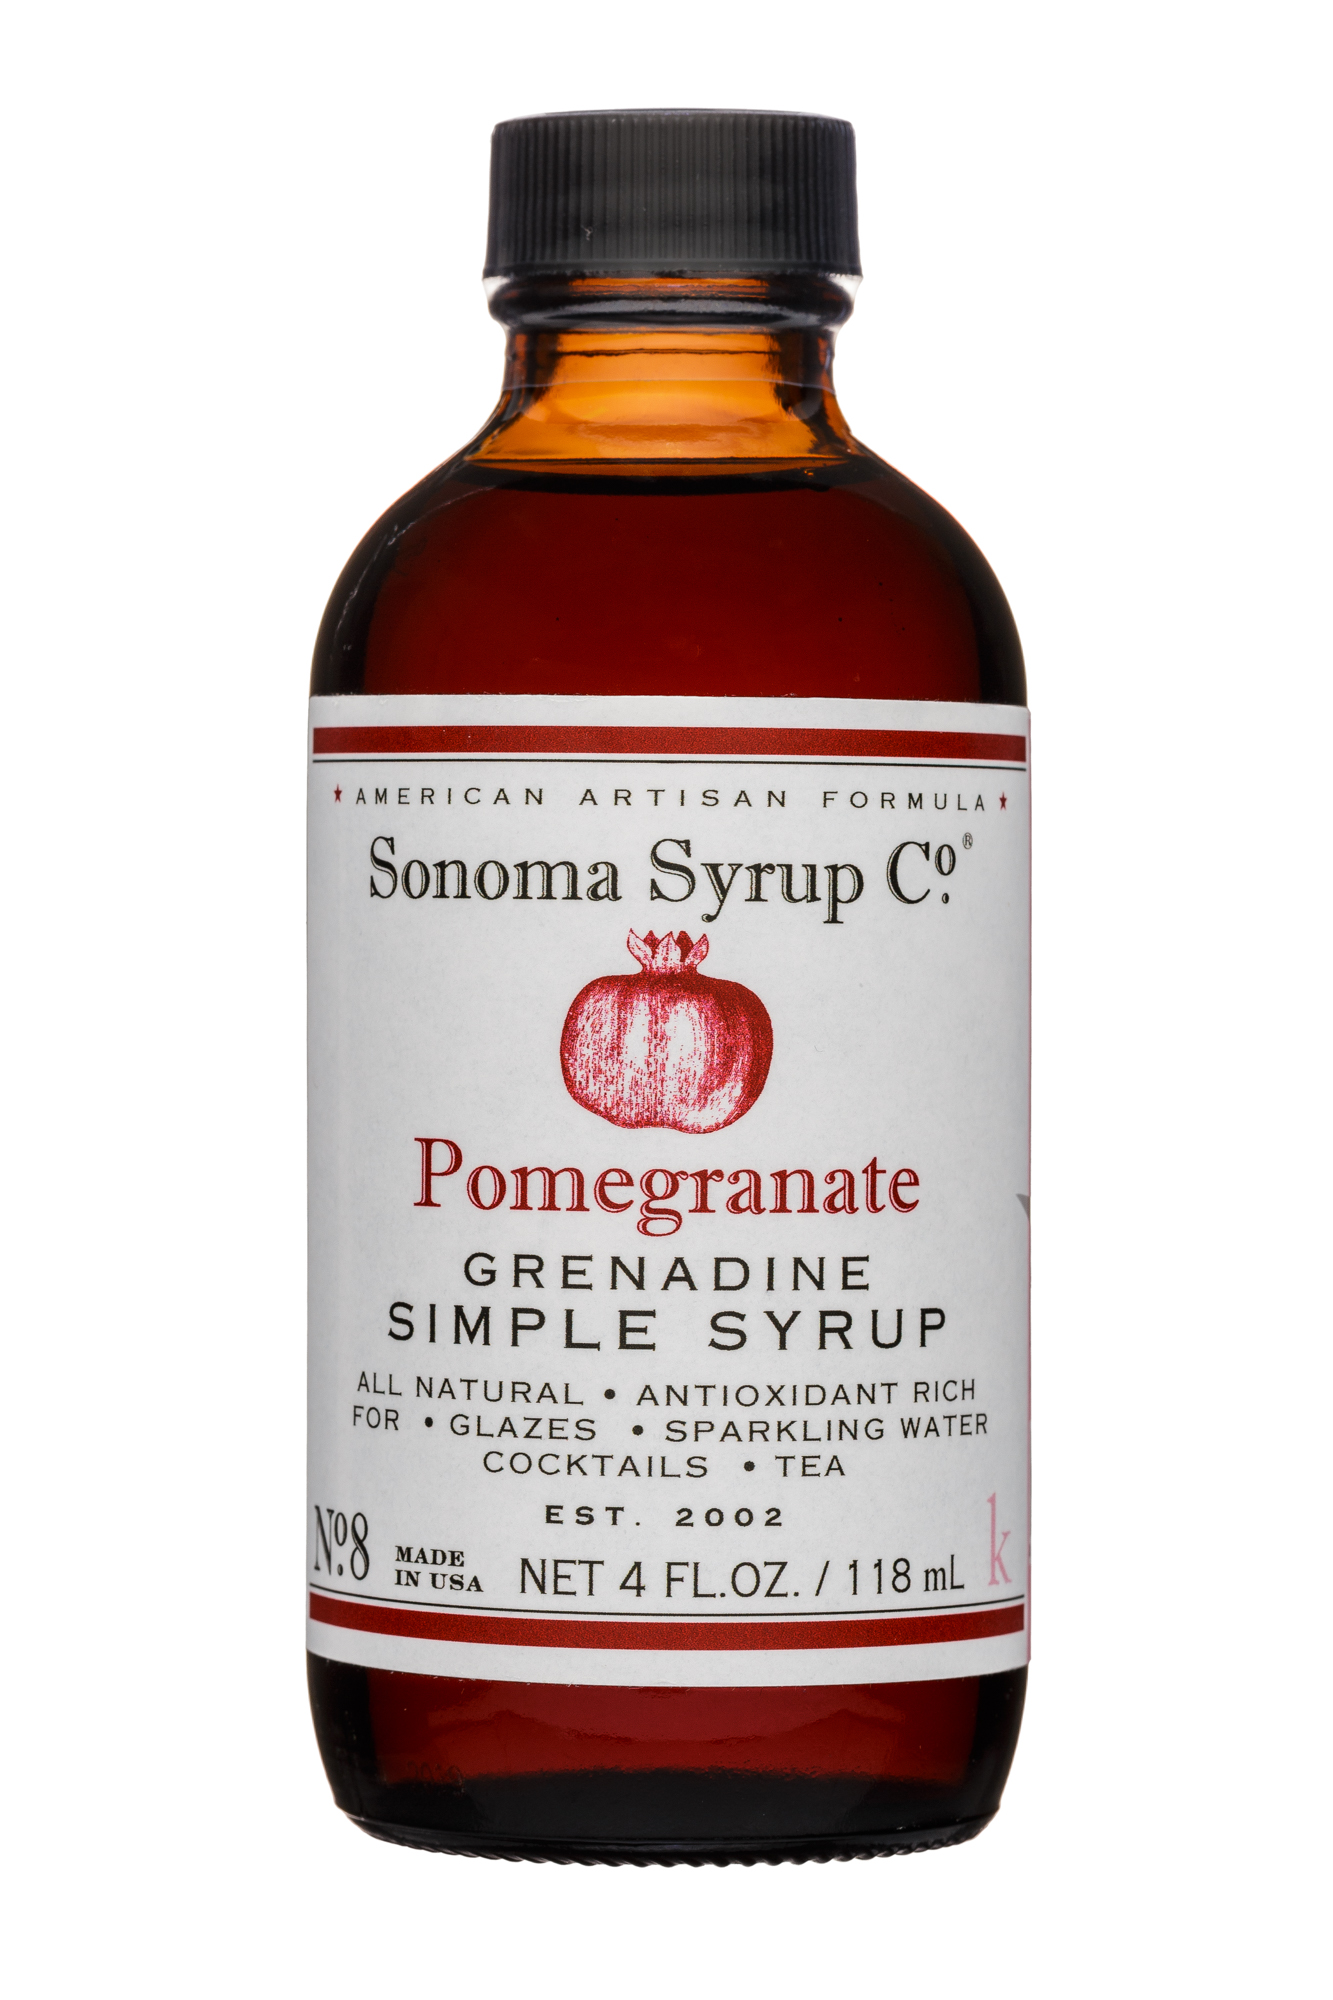 Sonoma Syrup Co.: SonomaSyrupCo-4oz-SimpleSyrup-Pomegranate-Front